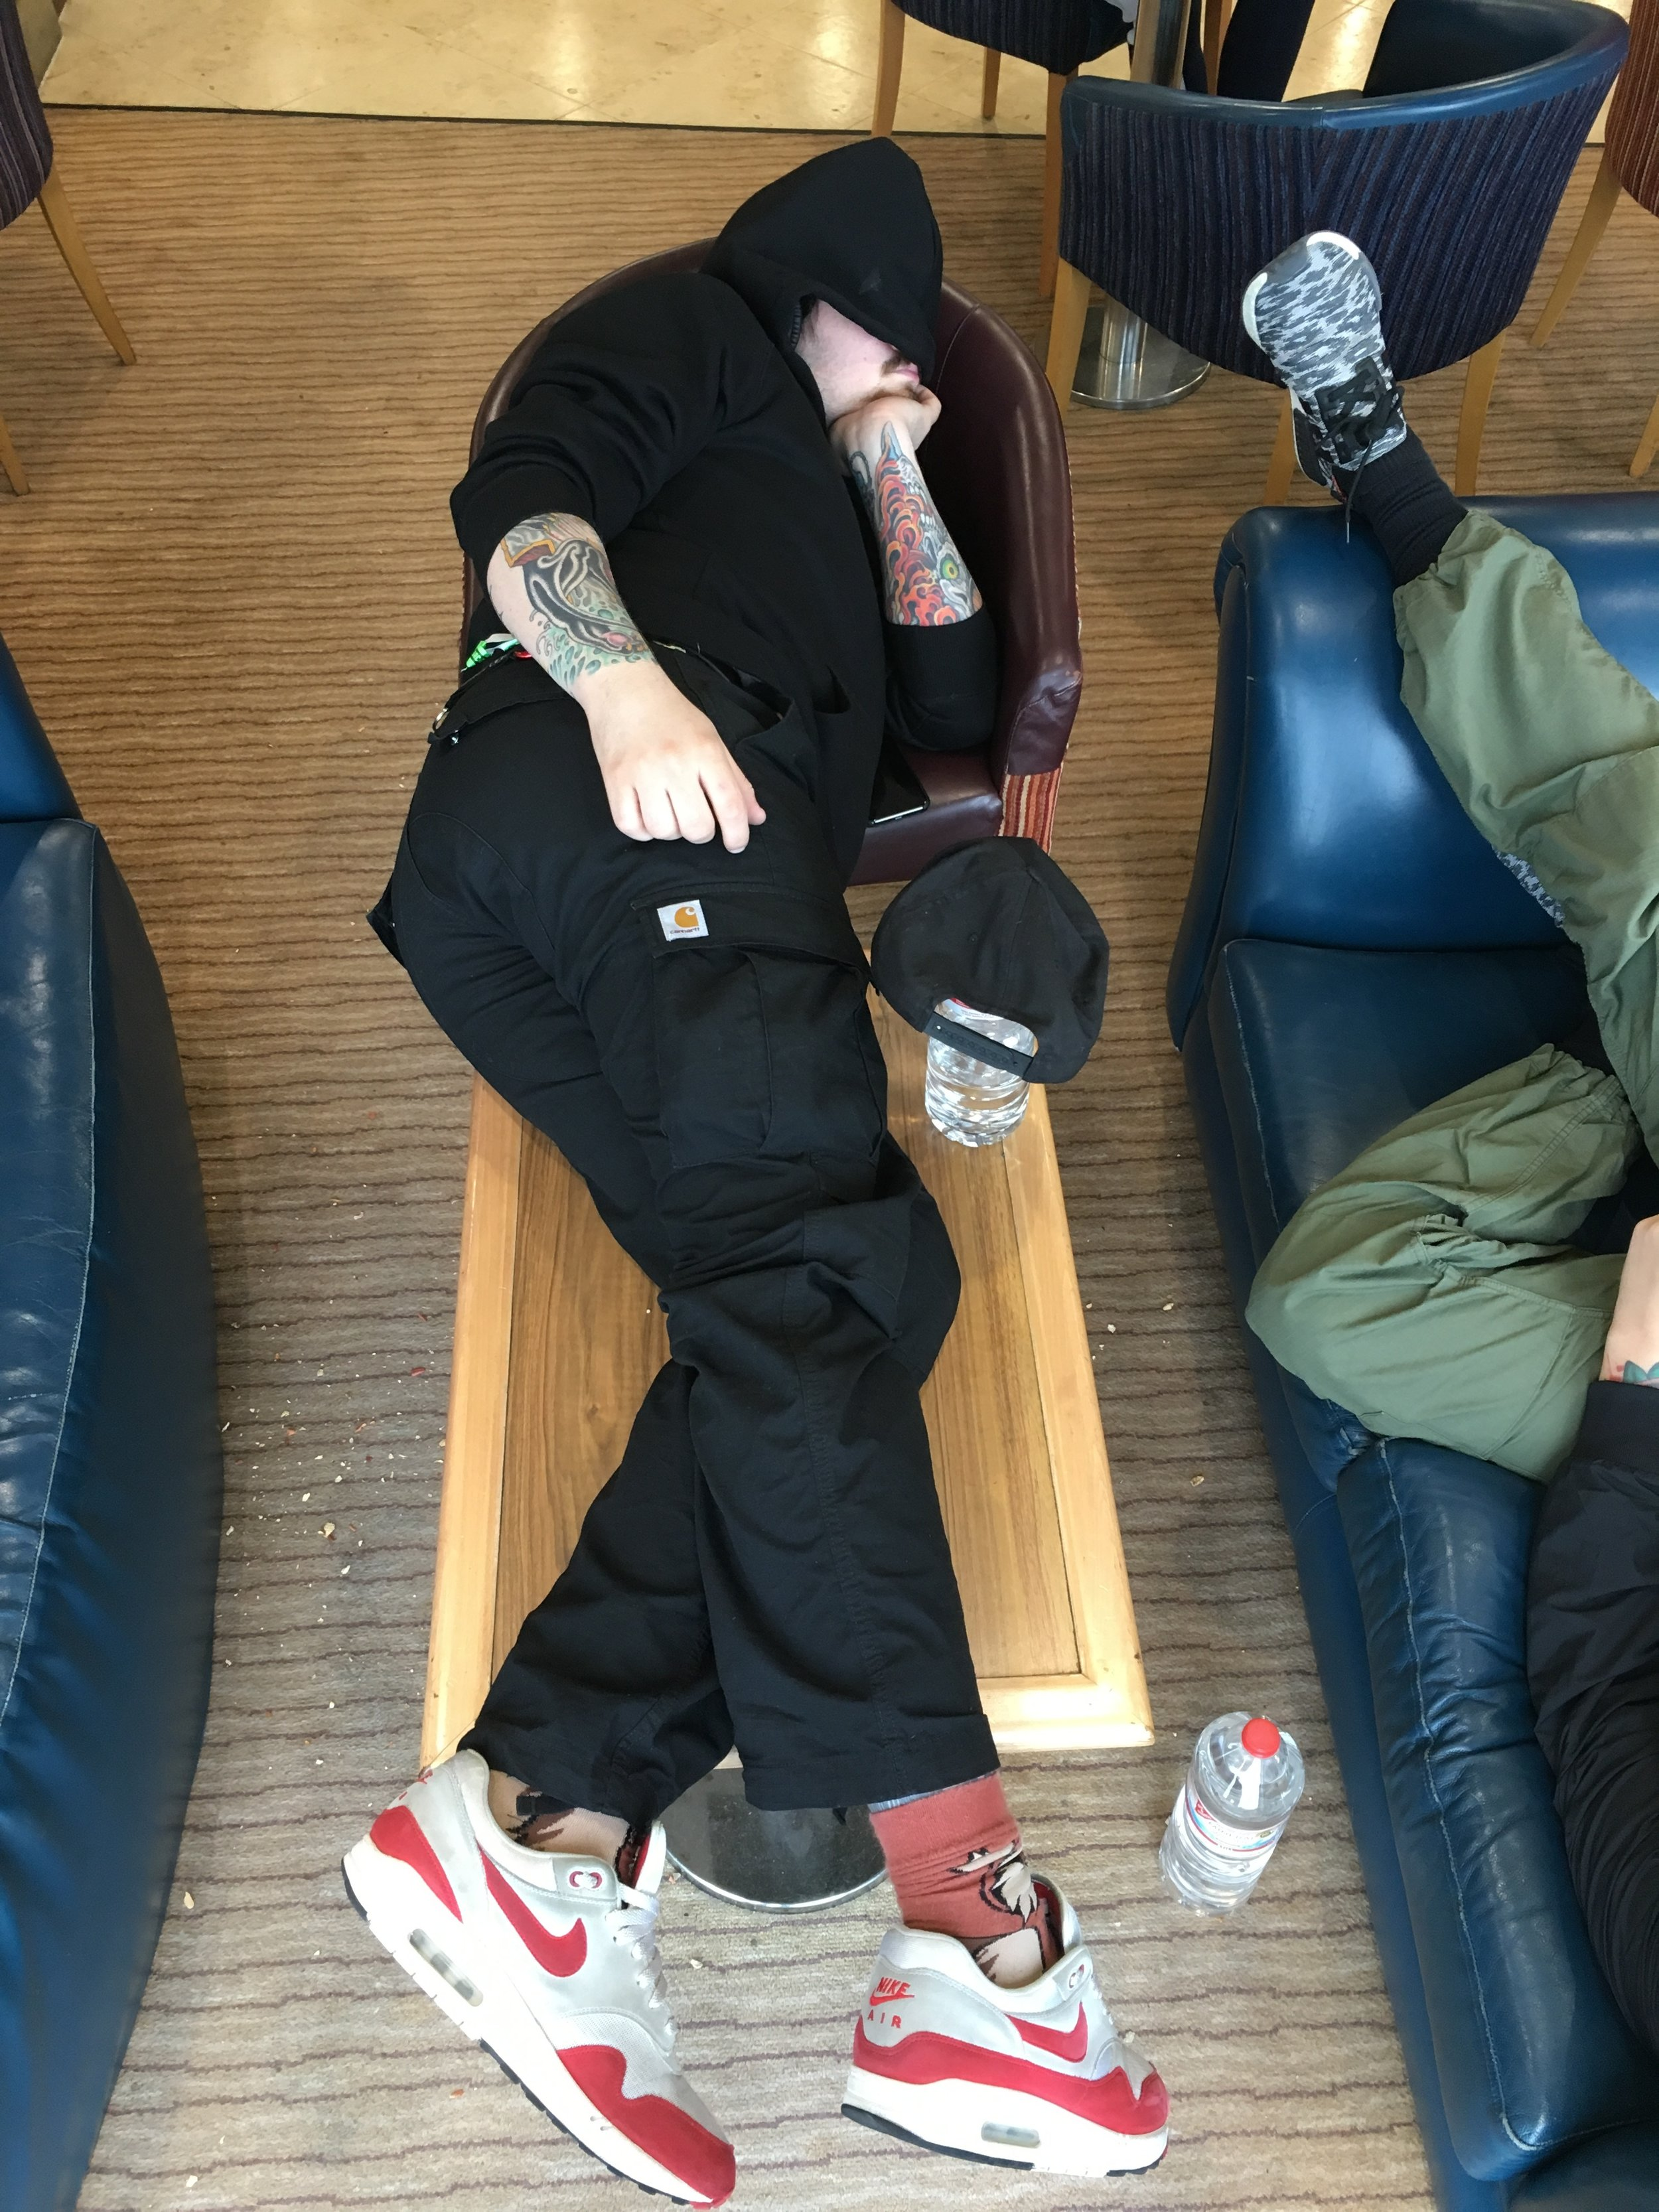 Colin, showing us all again that LOTS OF COMFORT AND UNINTERRUPTED SLEEP IS A MUST WHEN ON TOUR!